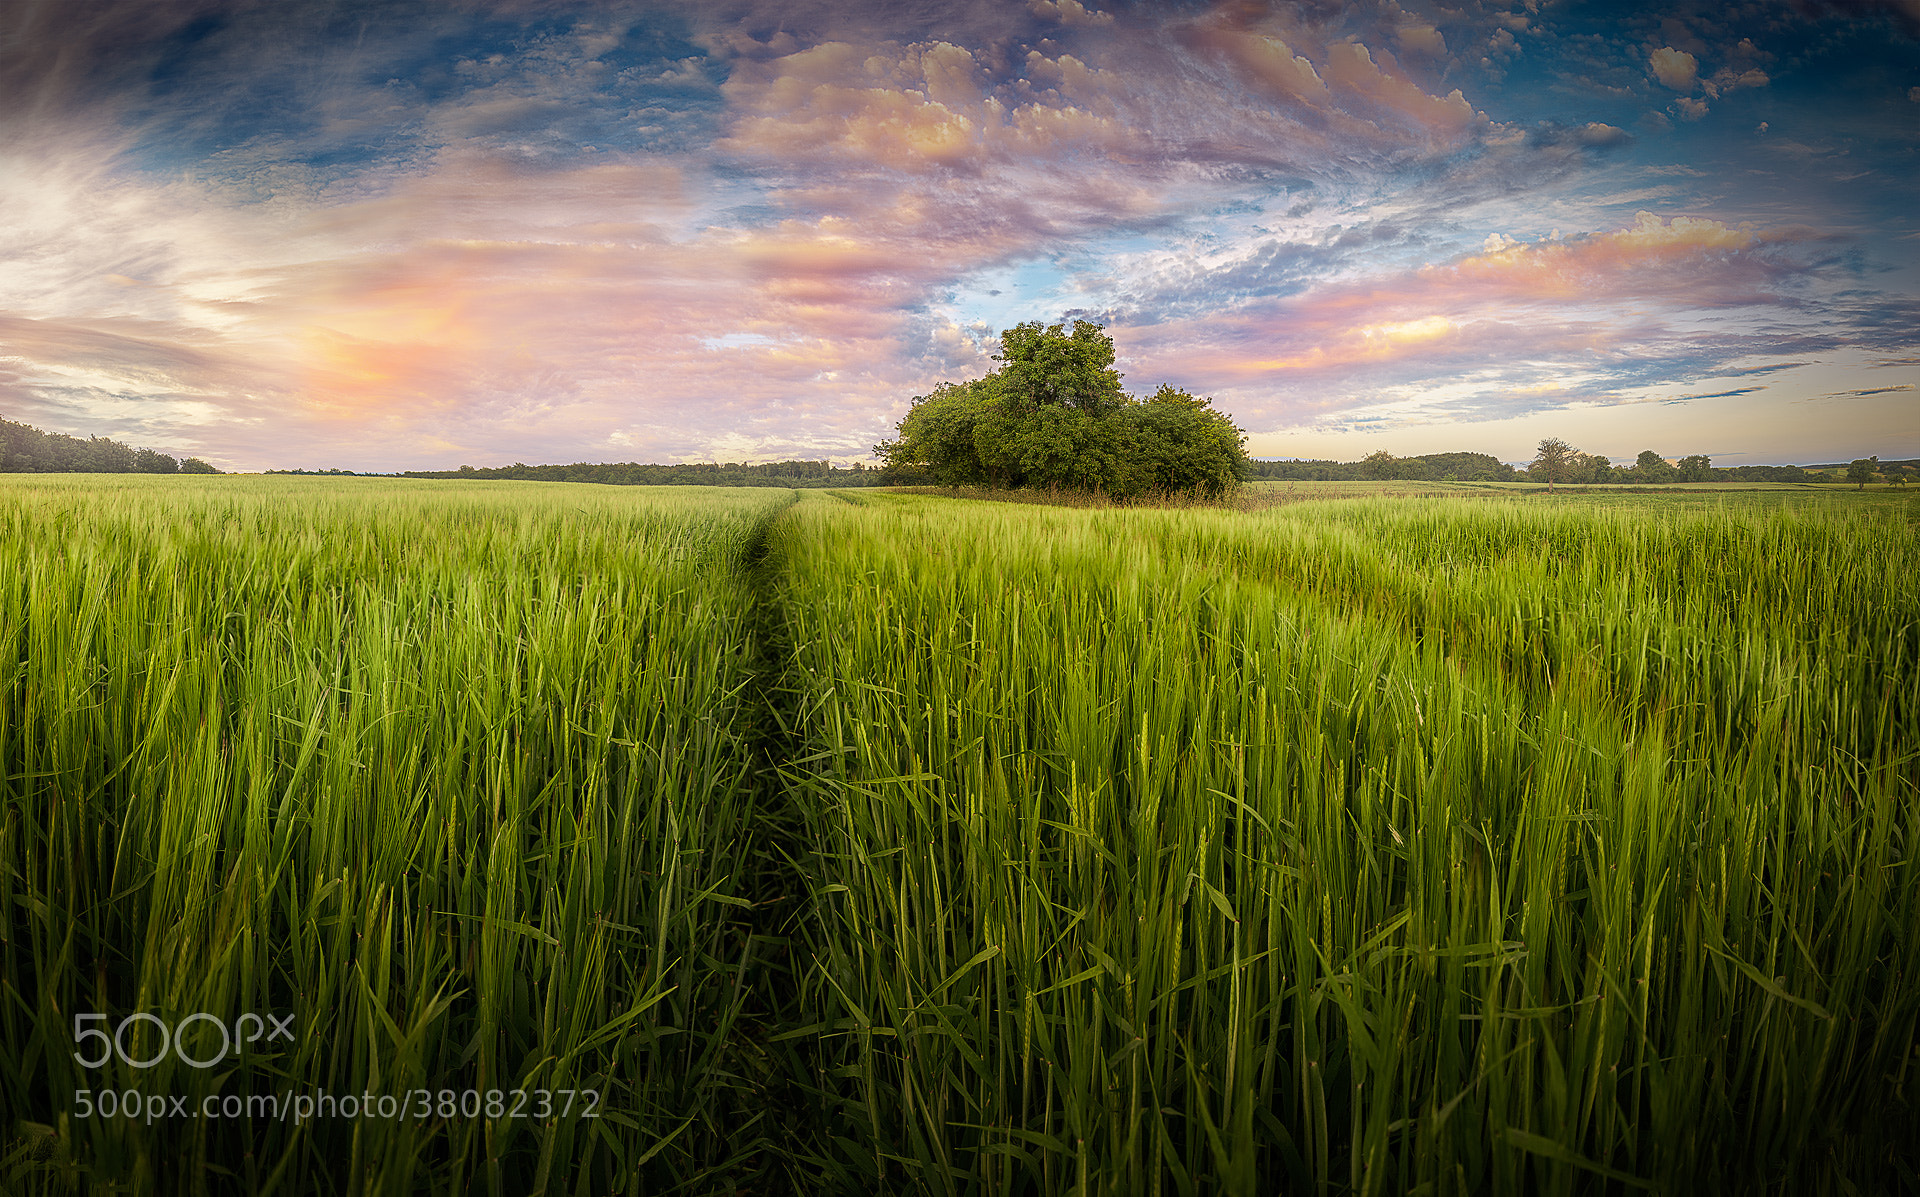 Photograph Sea of Green by Armin Barth on 500px